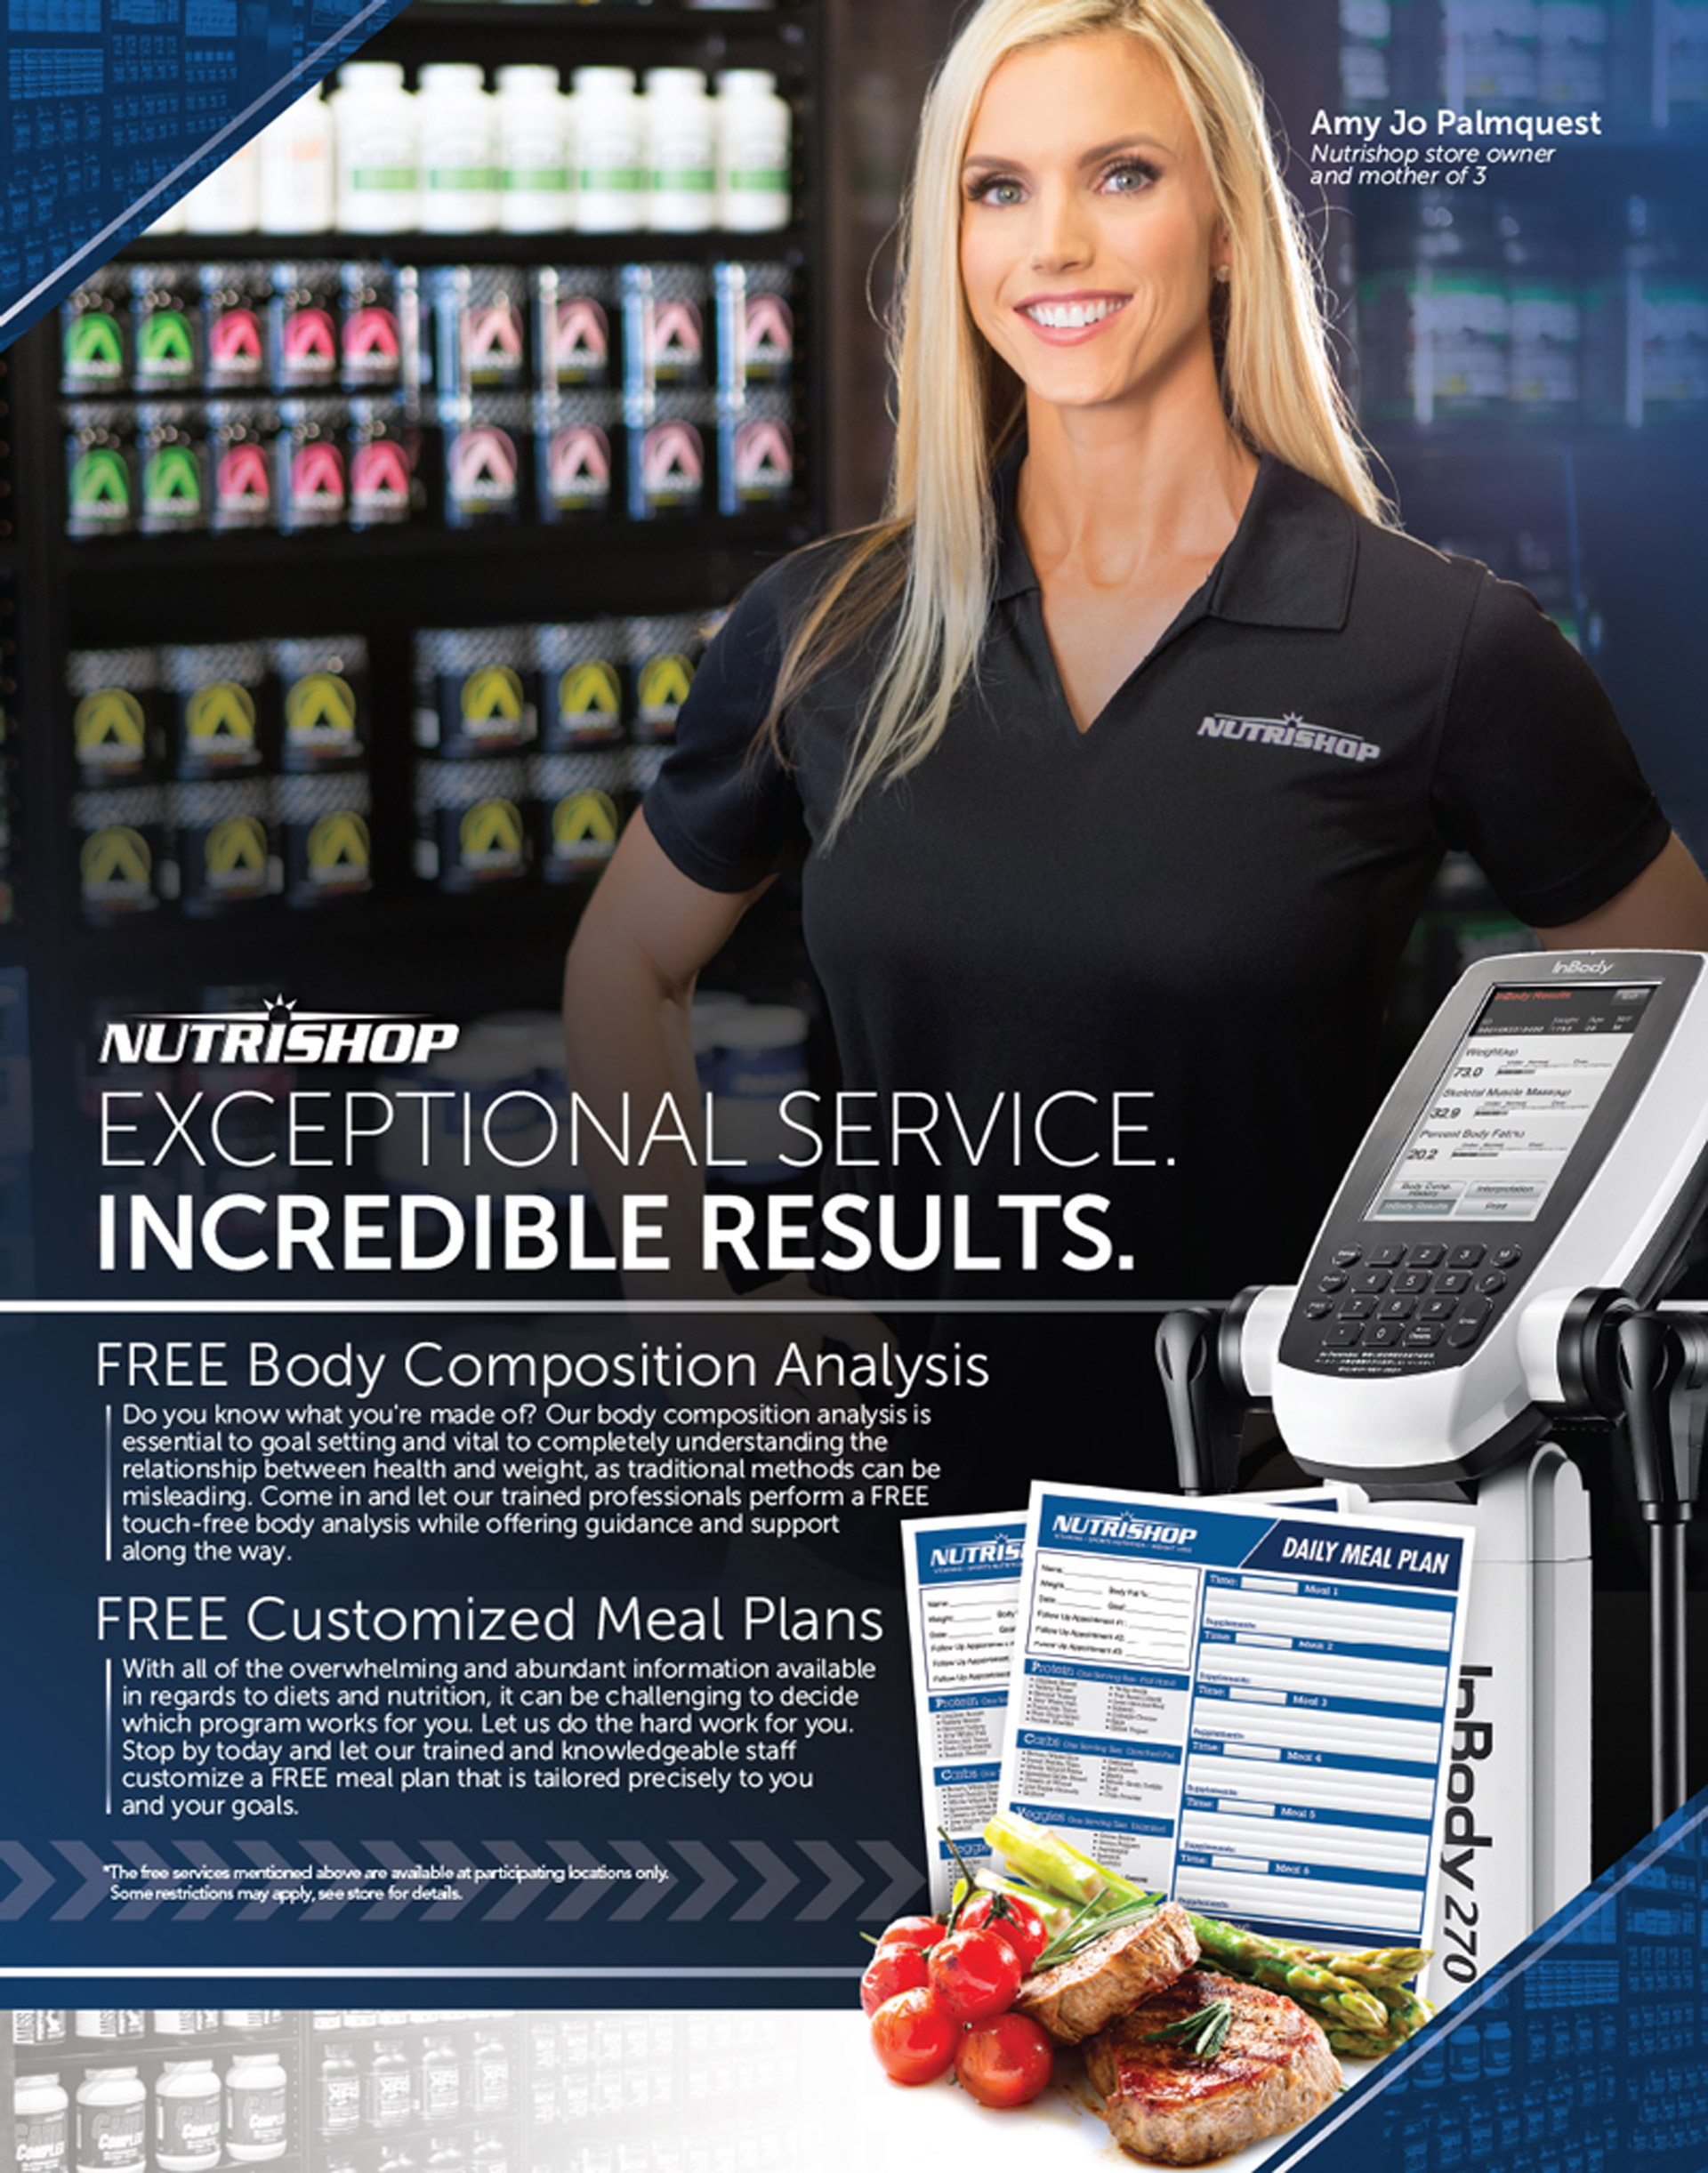 Exceptional Service. Incredible Results. FREE Body Composition Analysis. FREE Customized Meal Plans. *The free services mentioned above are available at participating locations only. Some restrctions may apply, see store for details.